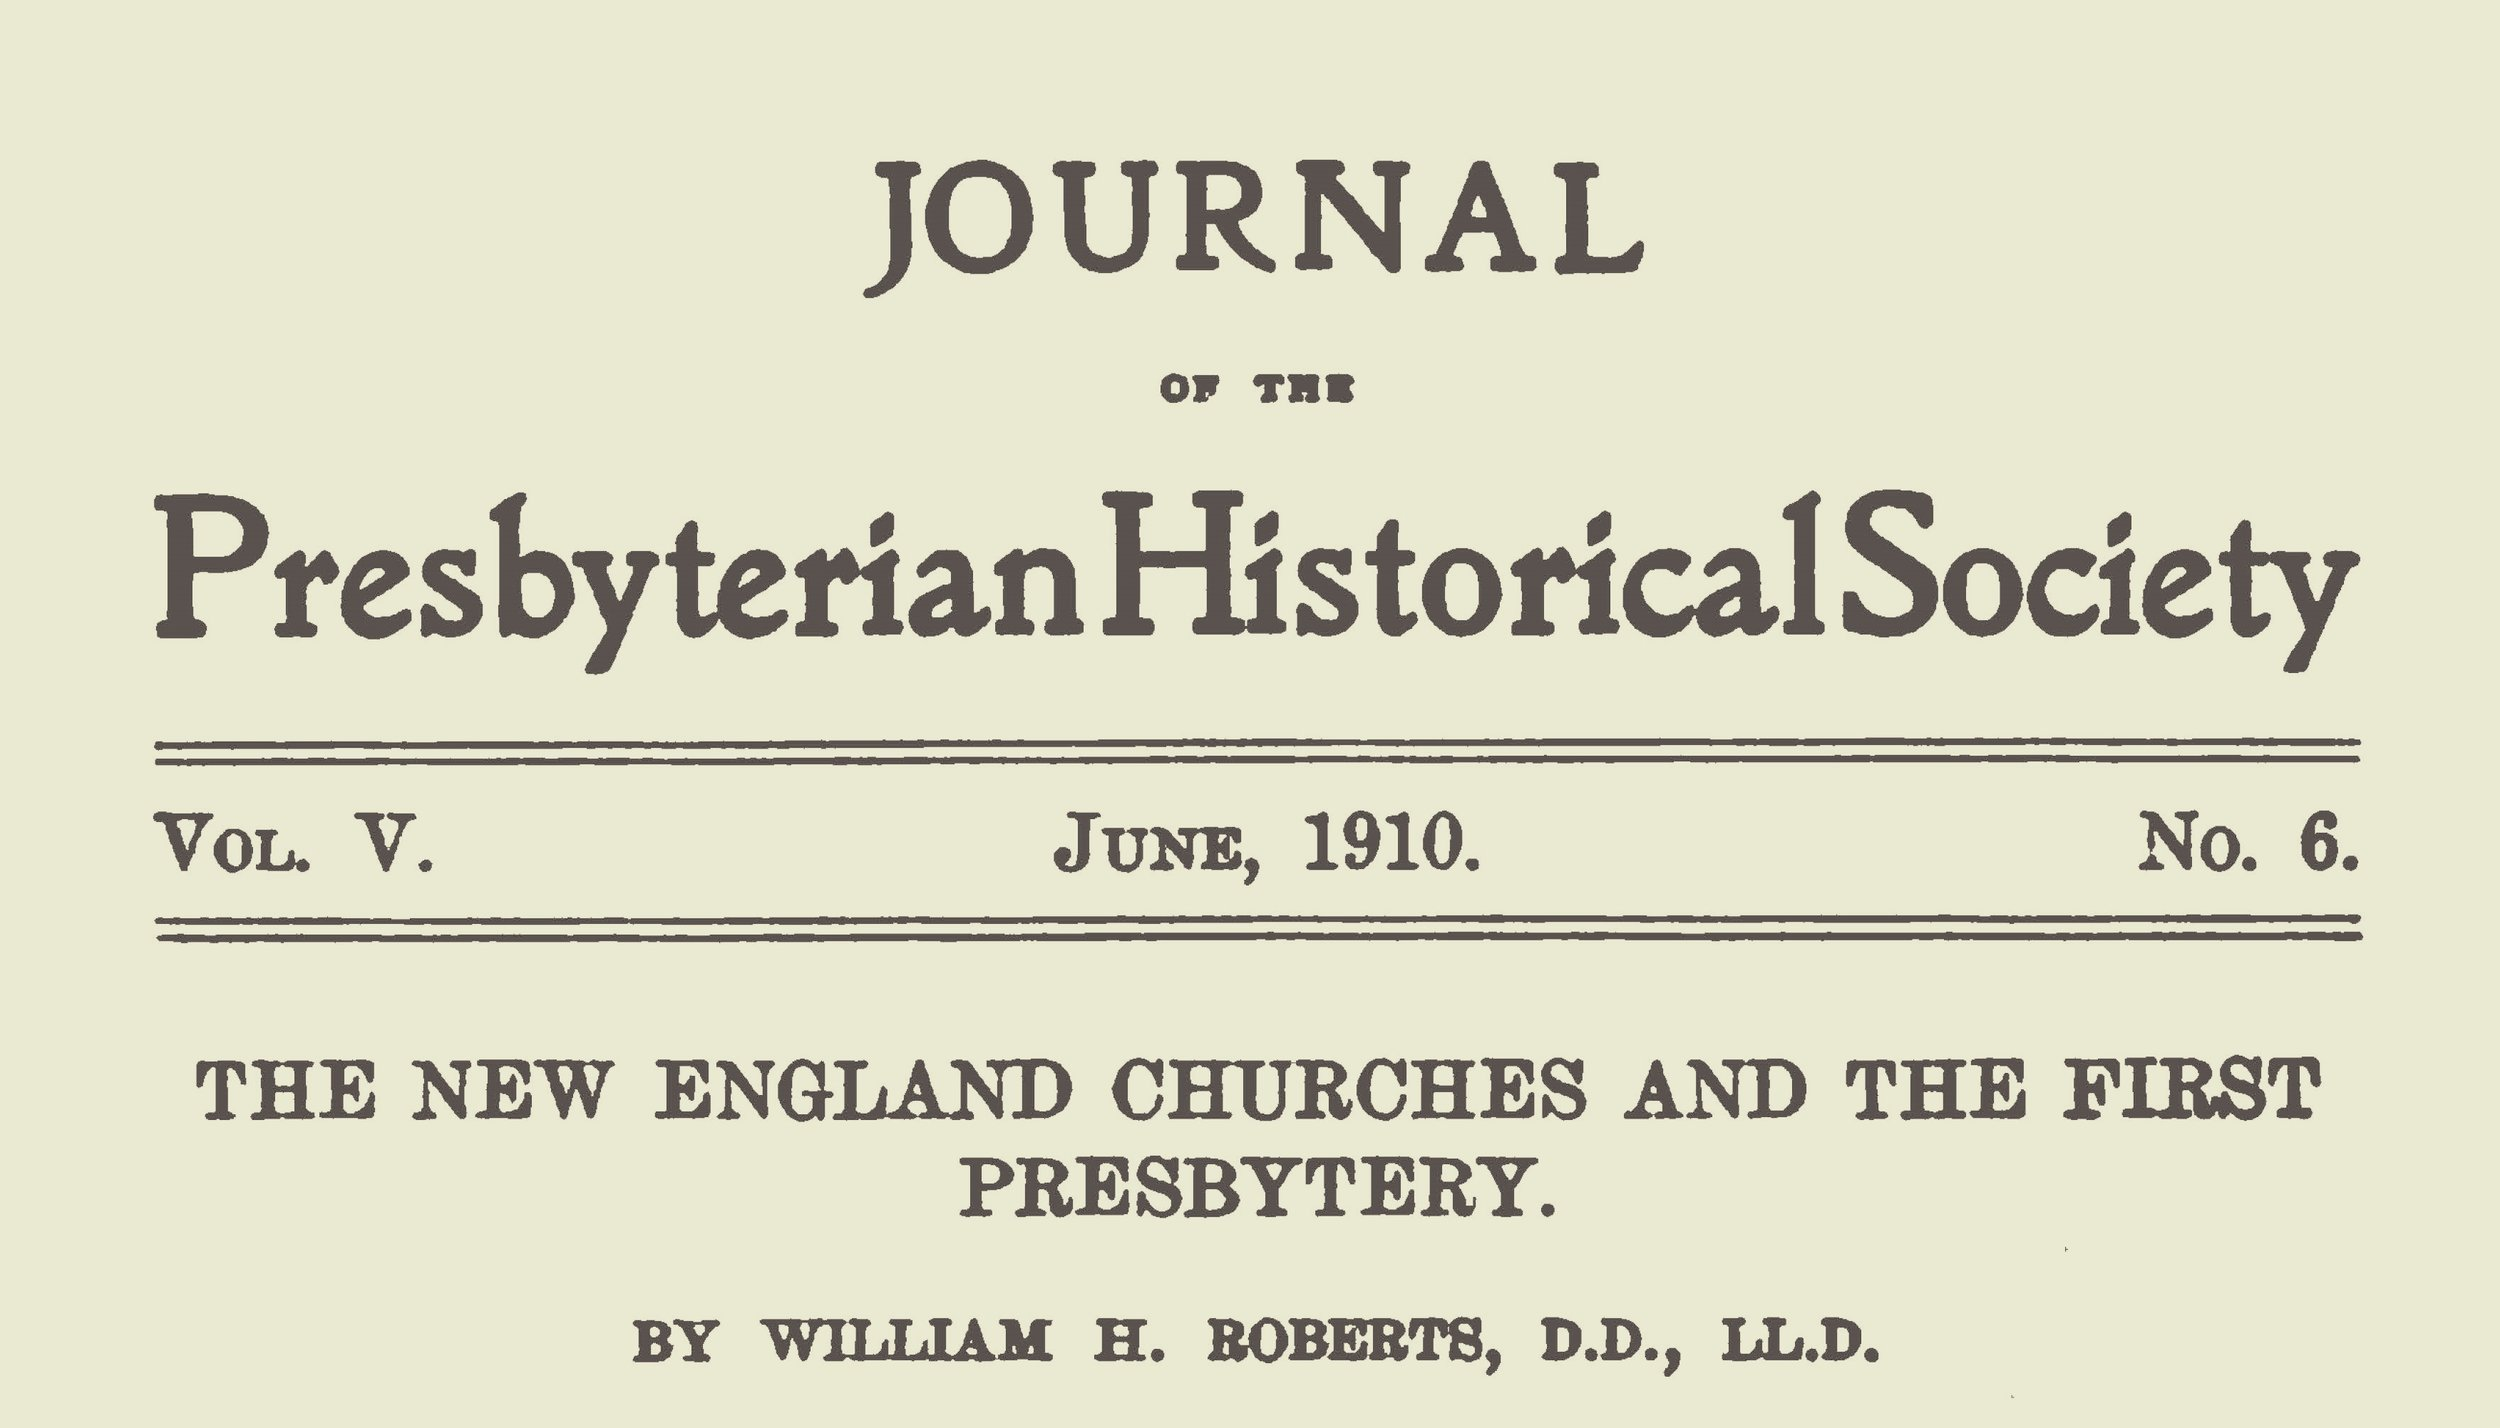 Roberts, William Henry, The New England Churches and the First Presbytery Title Page.jpg